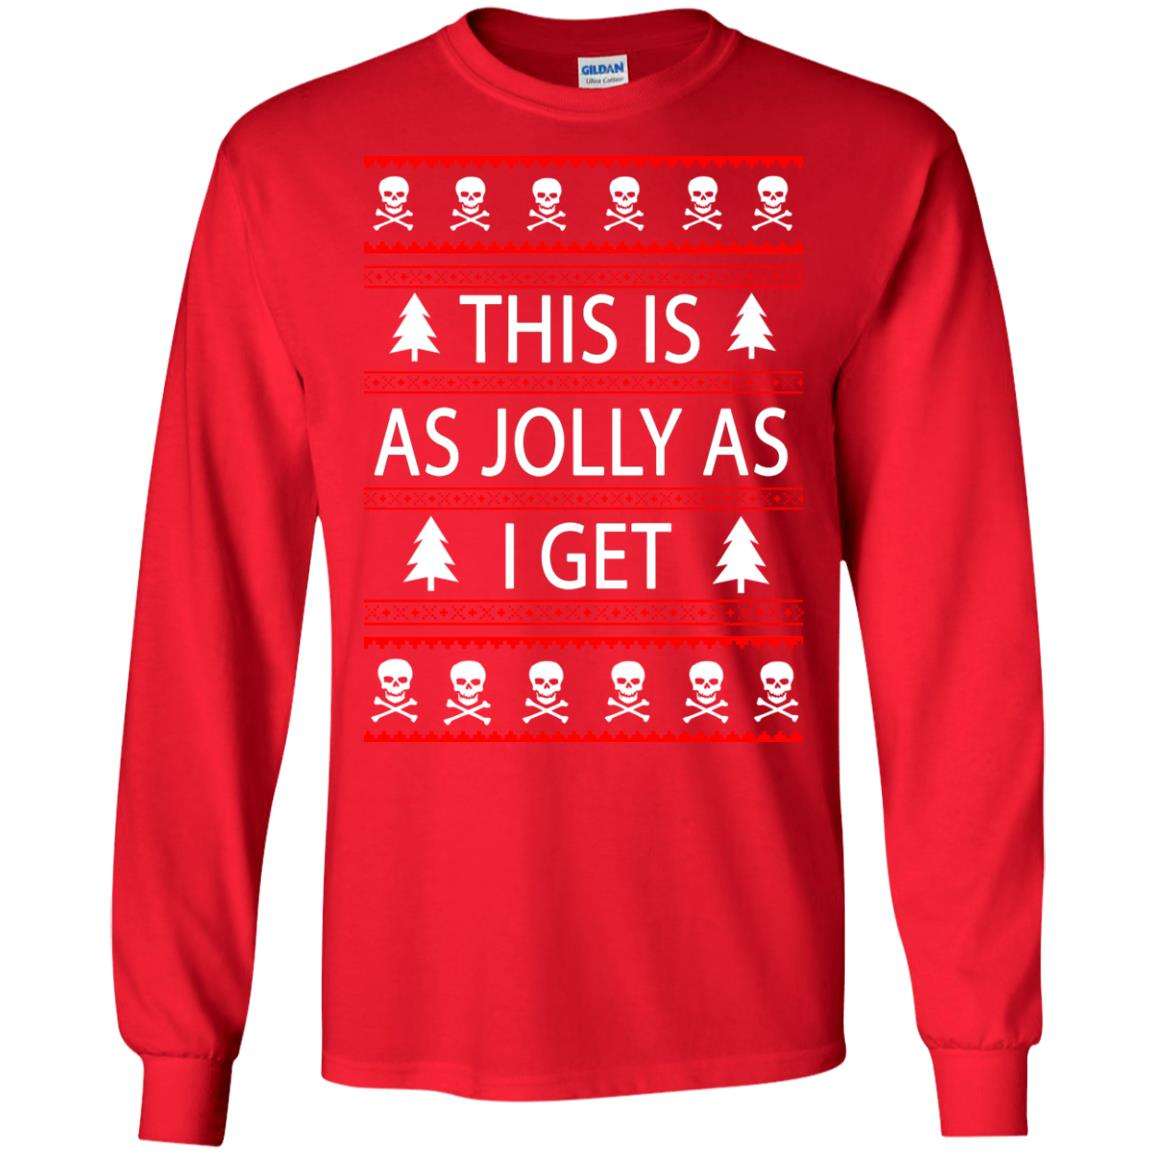 image 3161 - This Is as Jolly as I Get Emo Gothic Christmas Sweatshirts, Hoodie